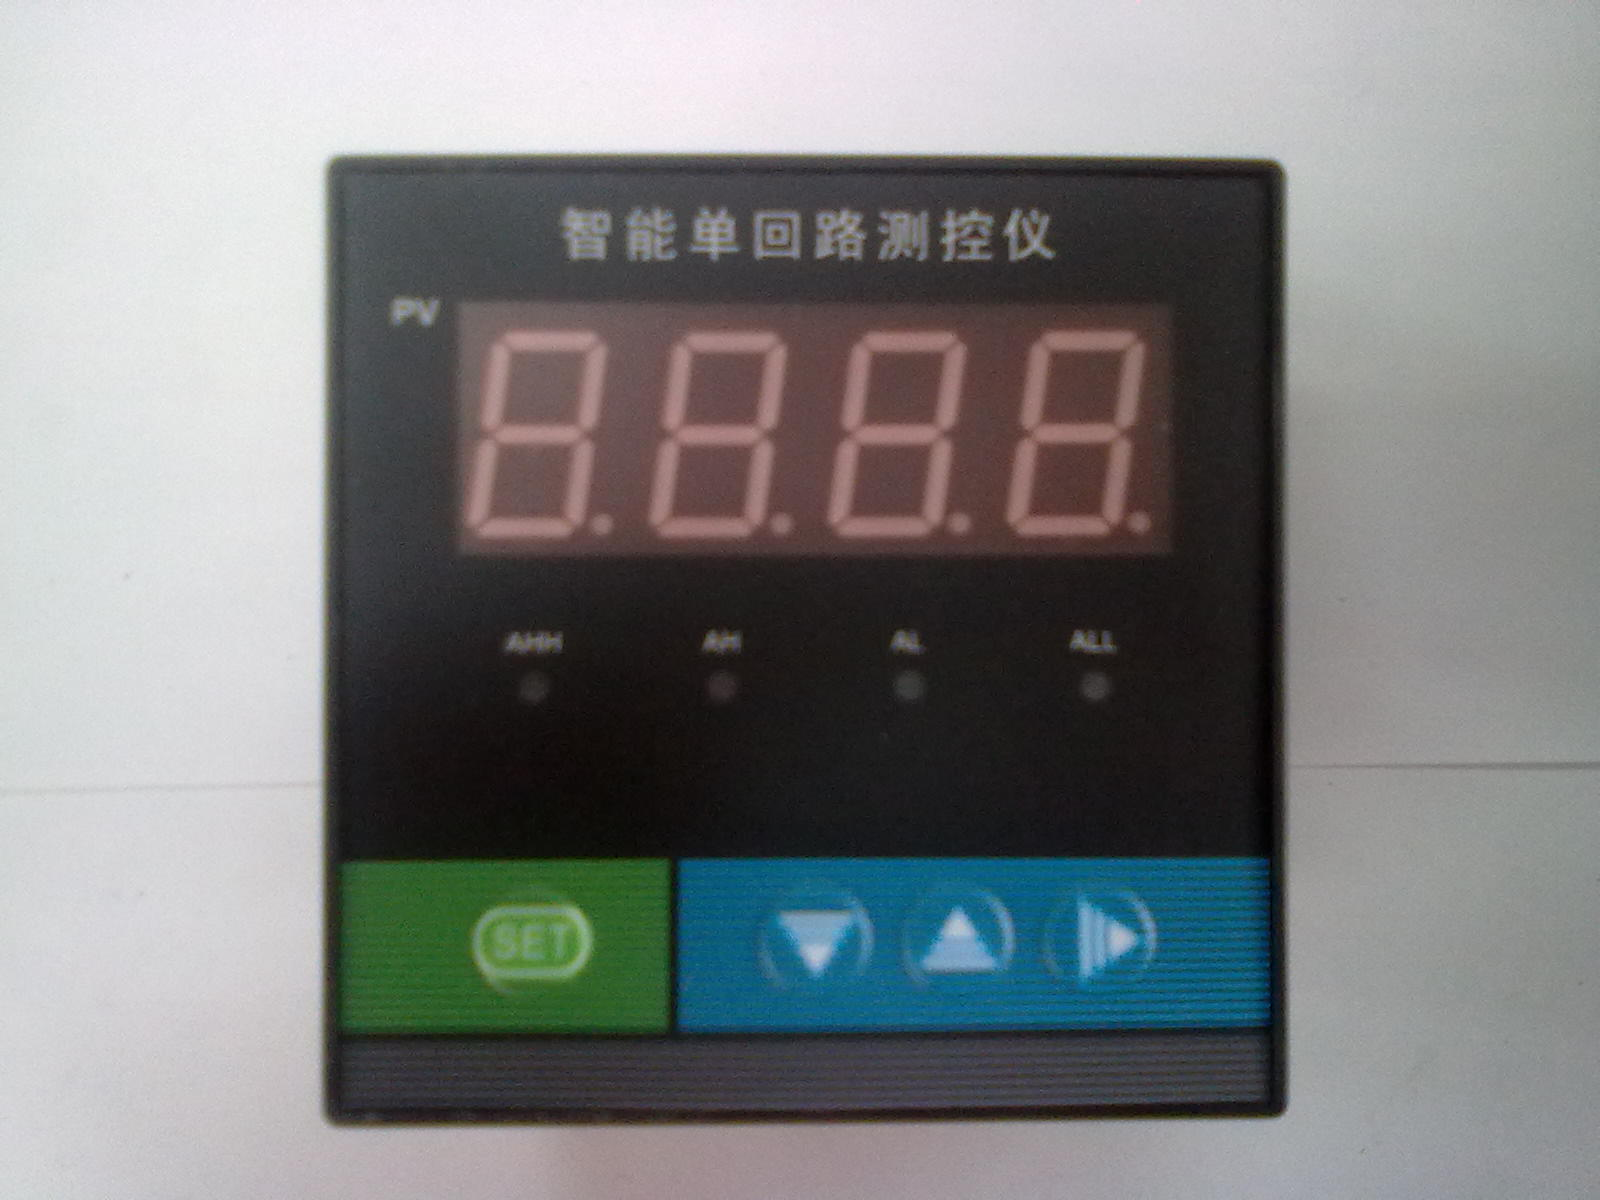 Терморегулятор Tianjin auto instrument co 1 C803